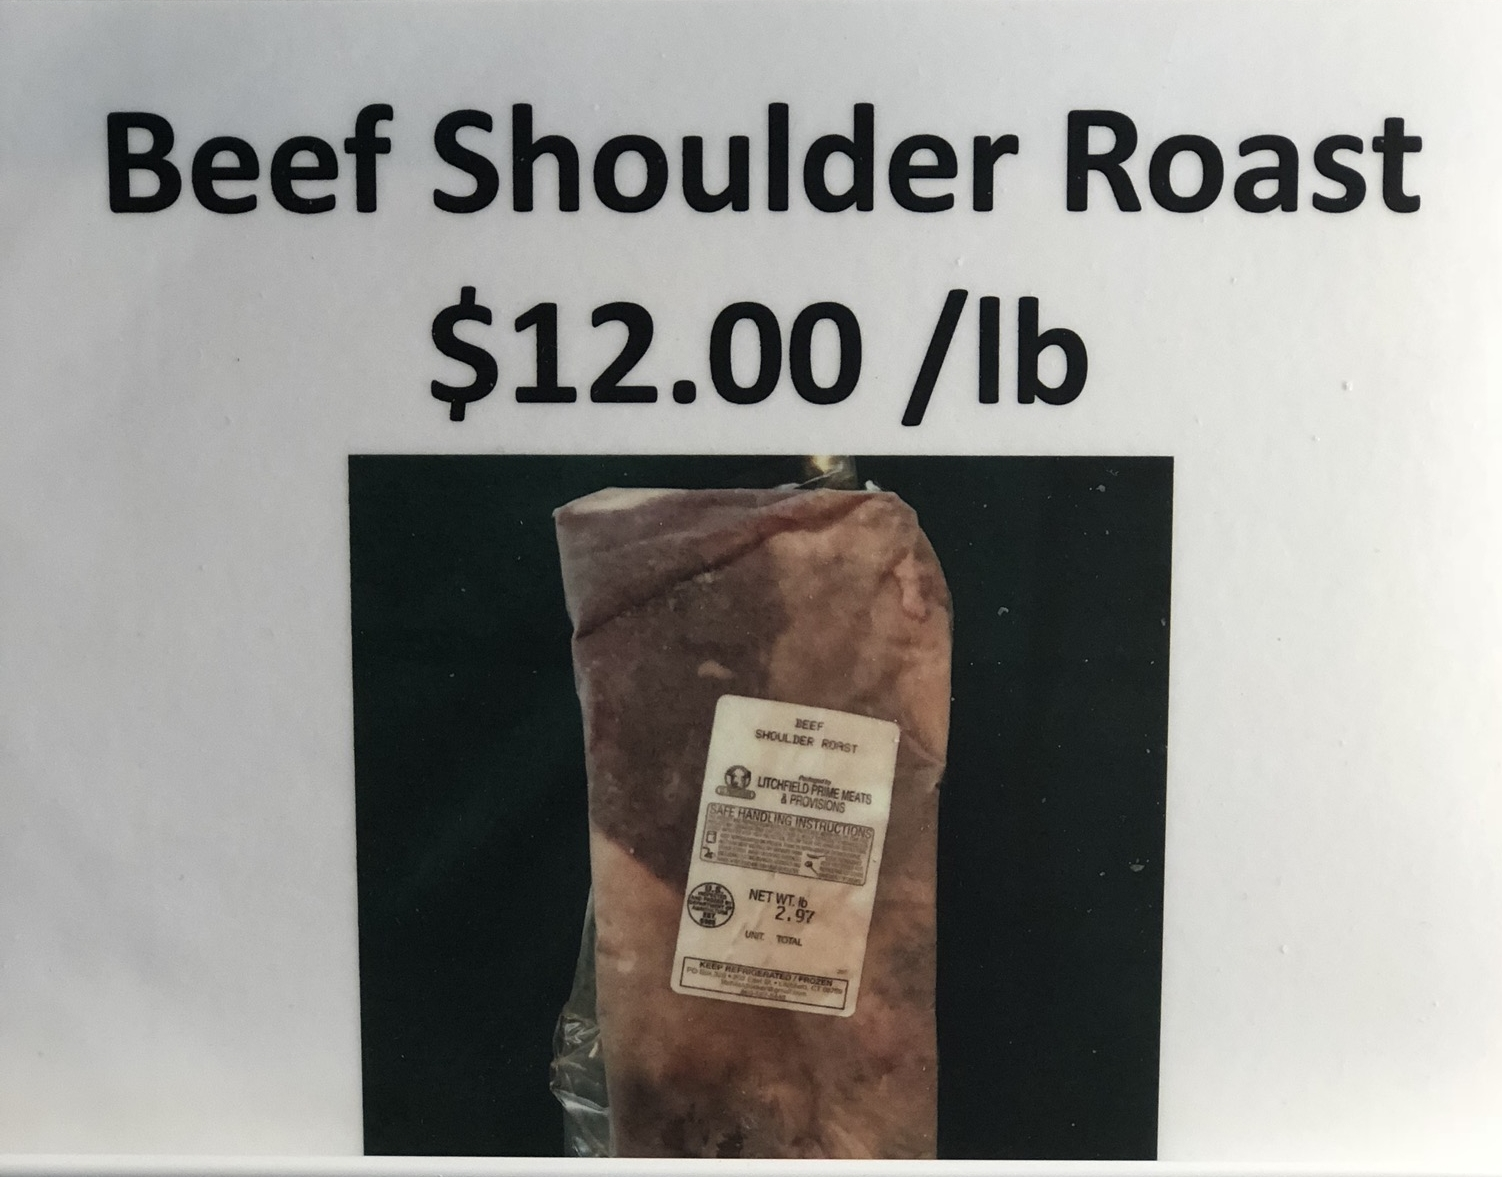 Beef Shoulder Roast